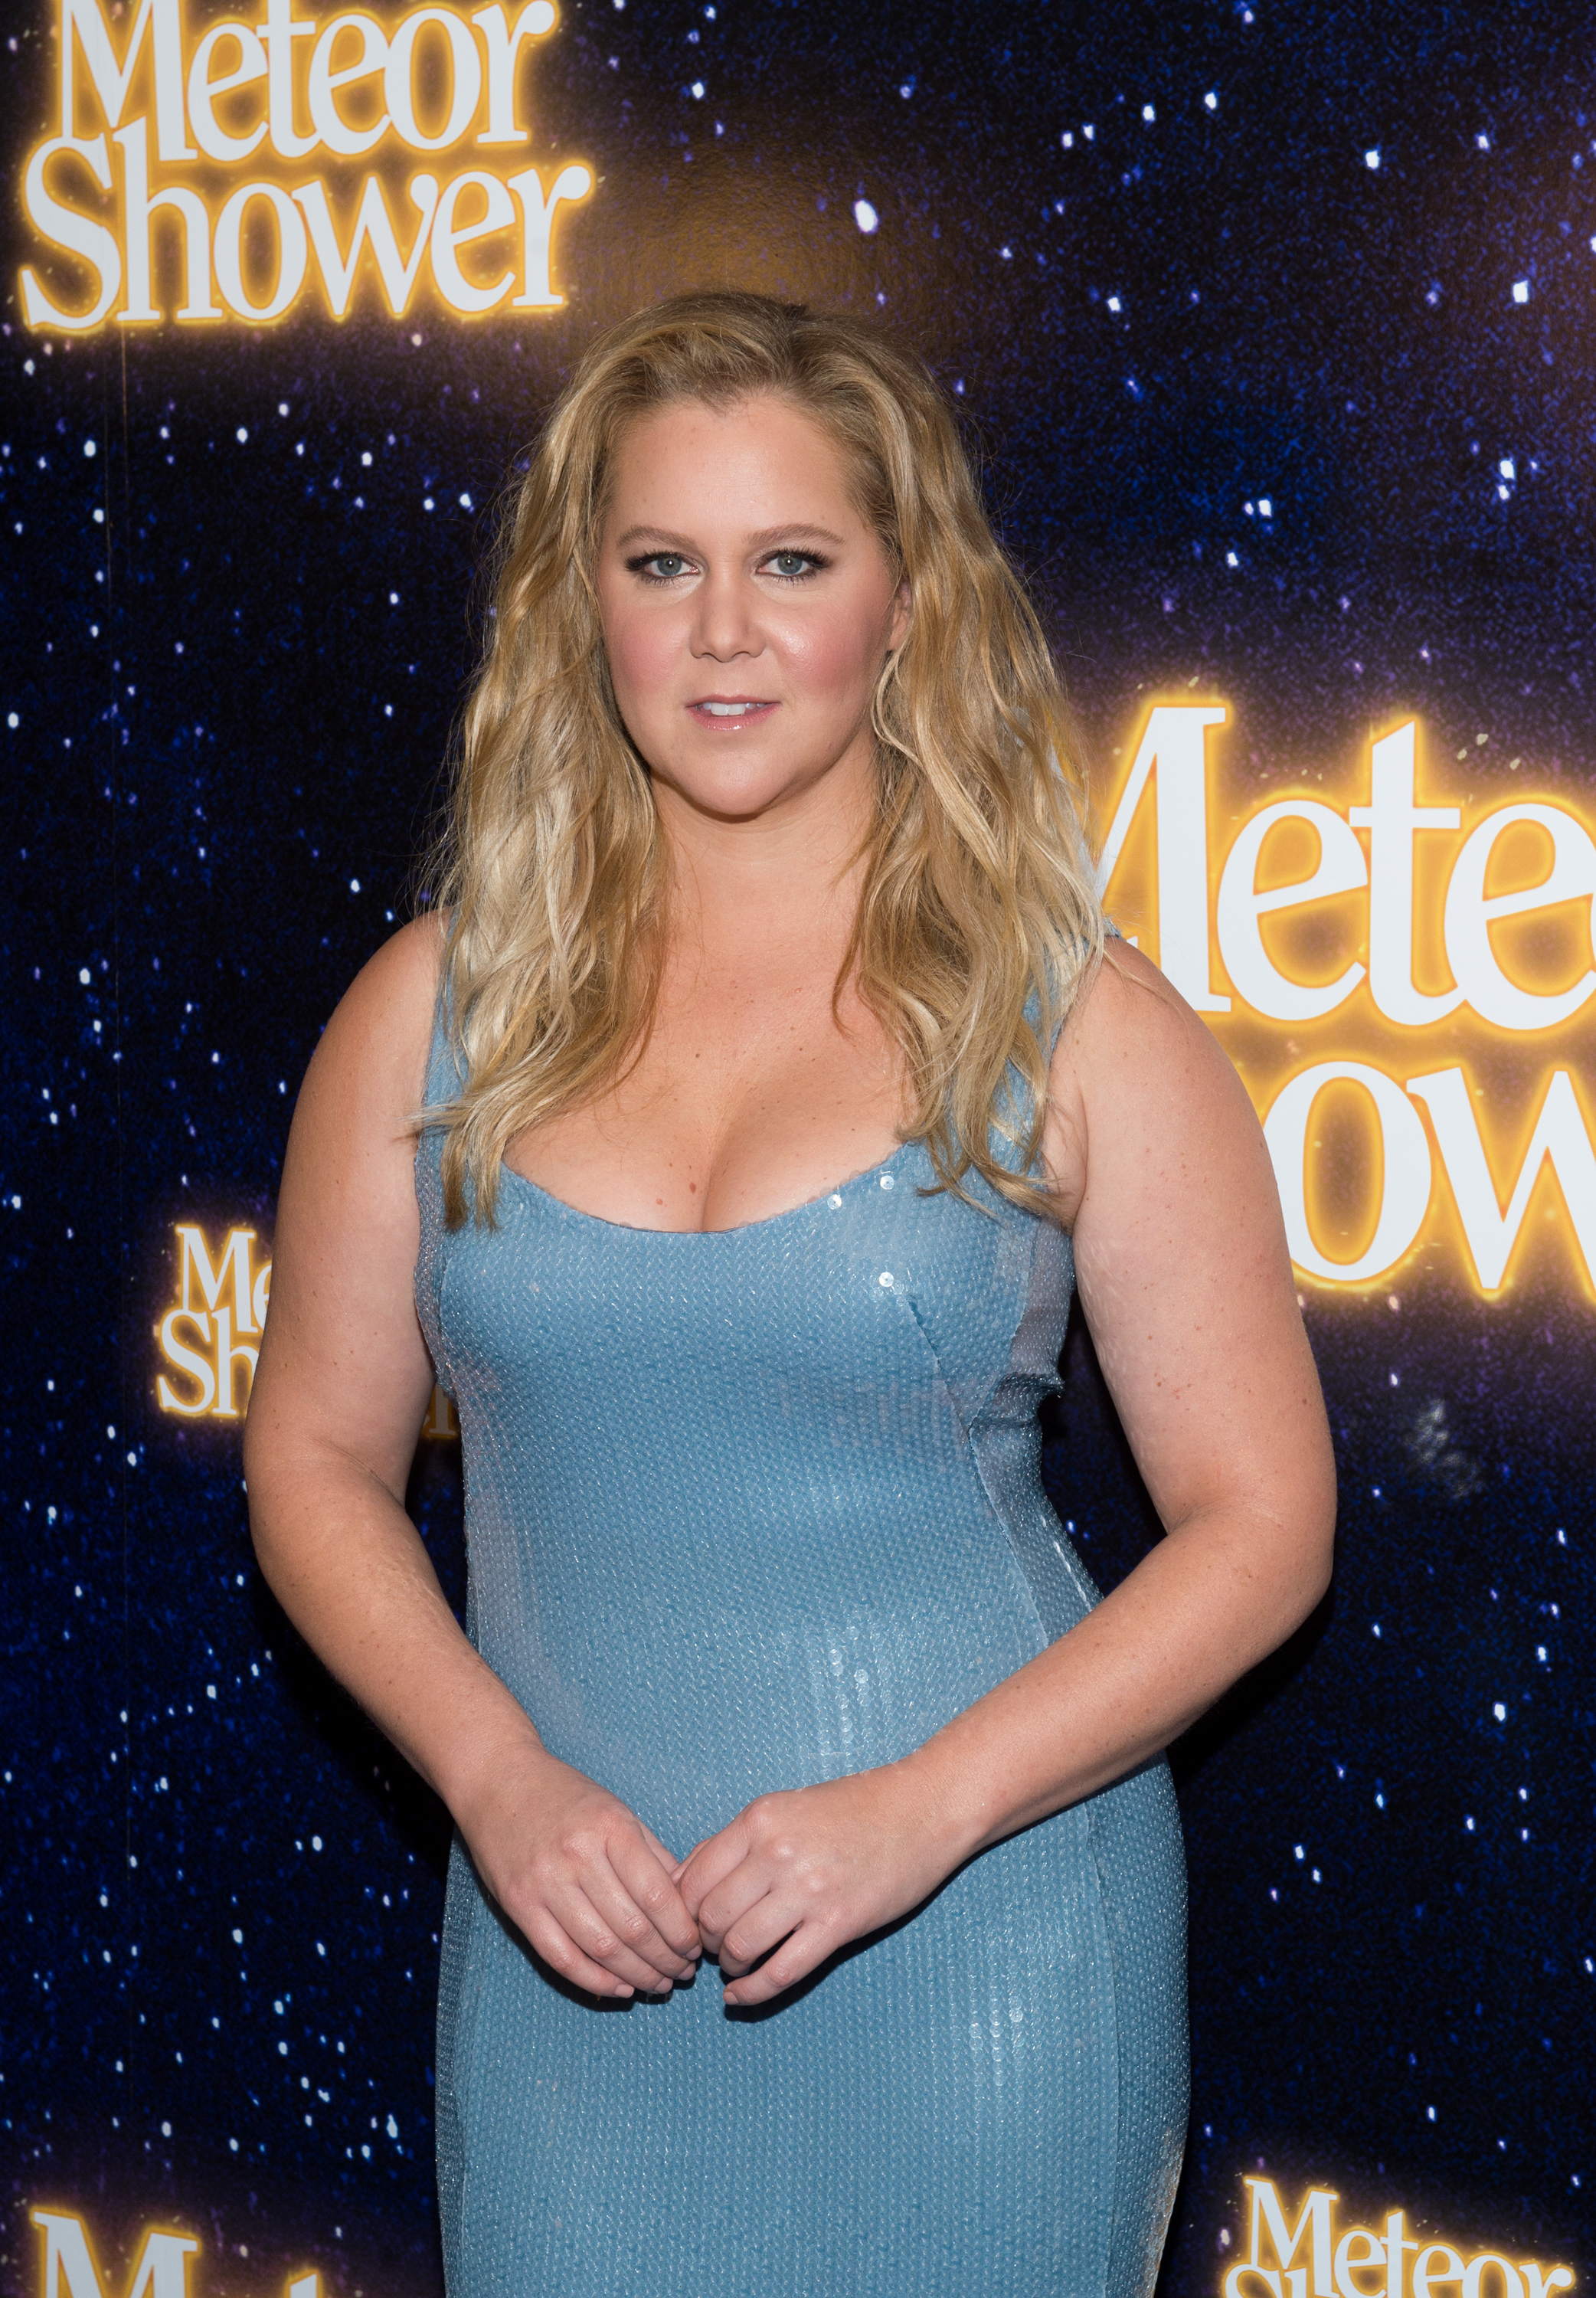 Amy Schumer explains her part in Hilaria Baldwin controversy